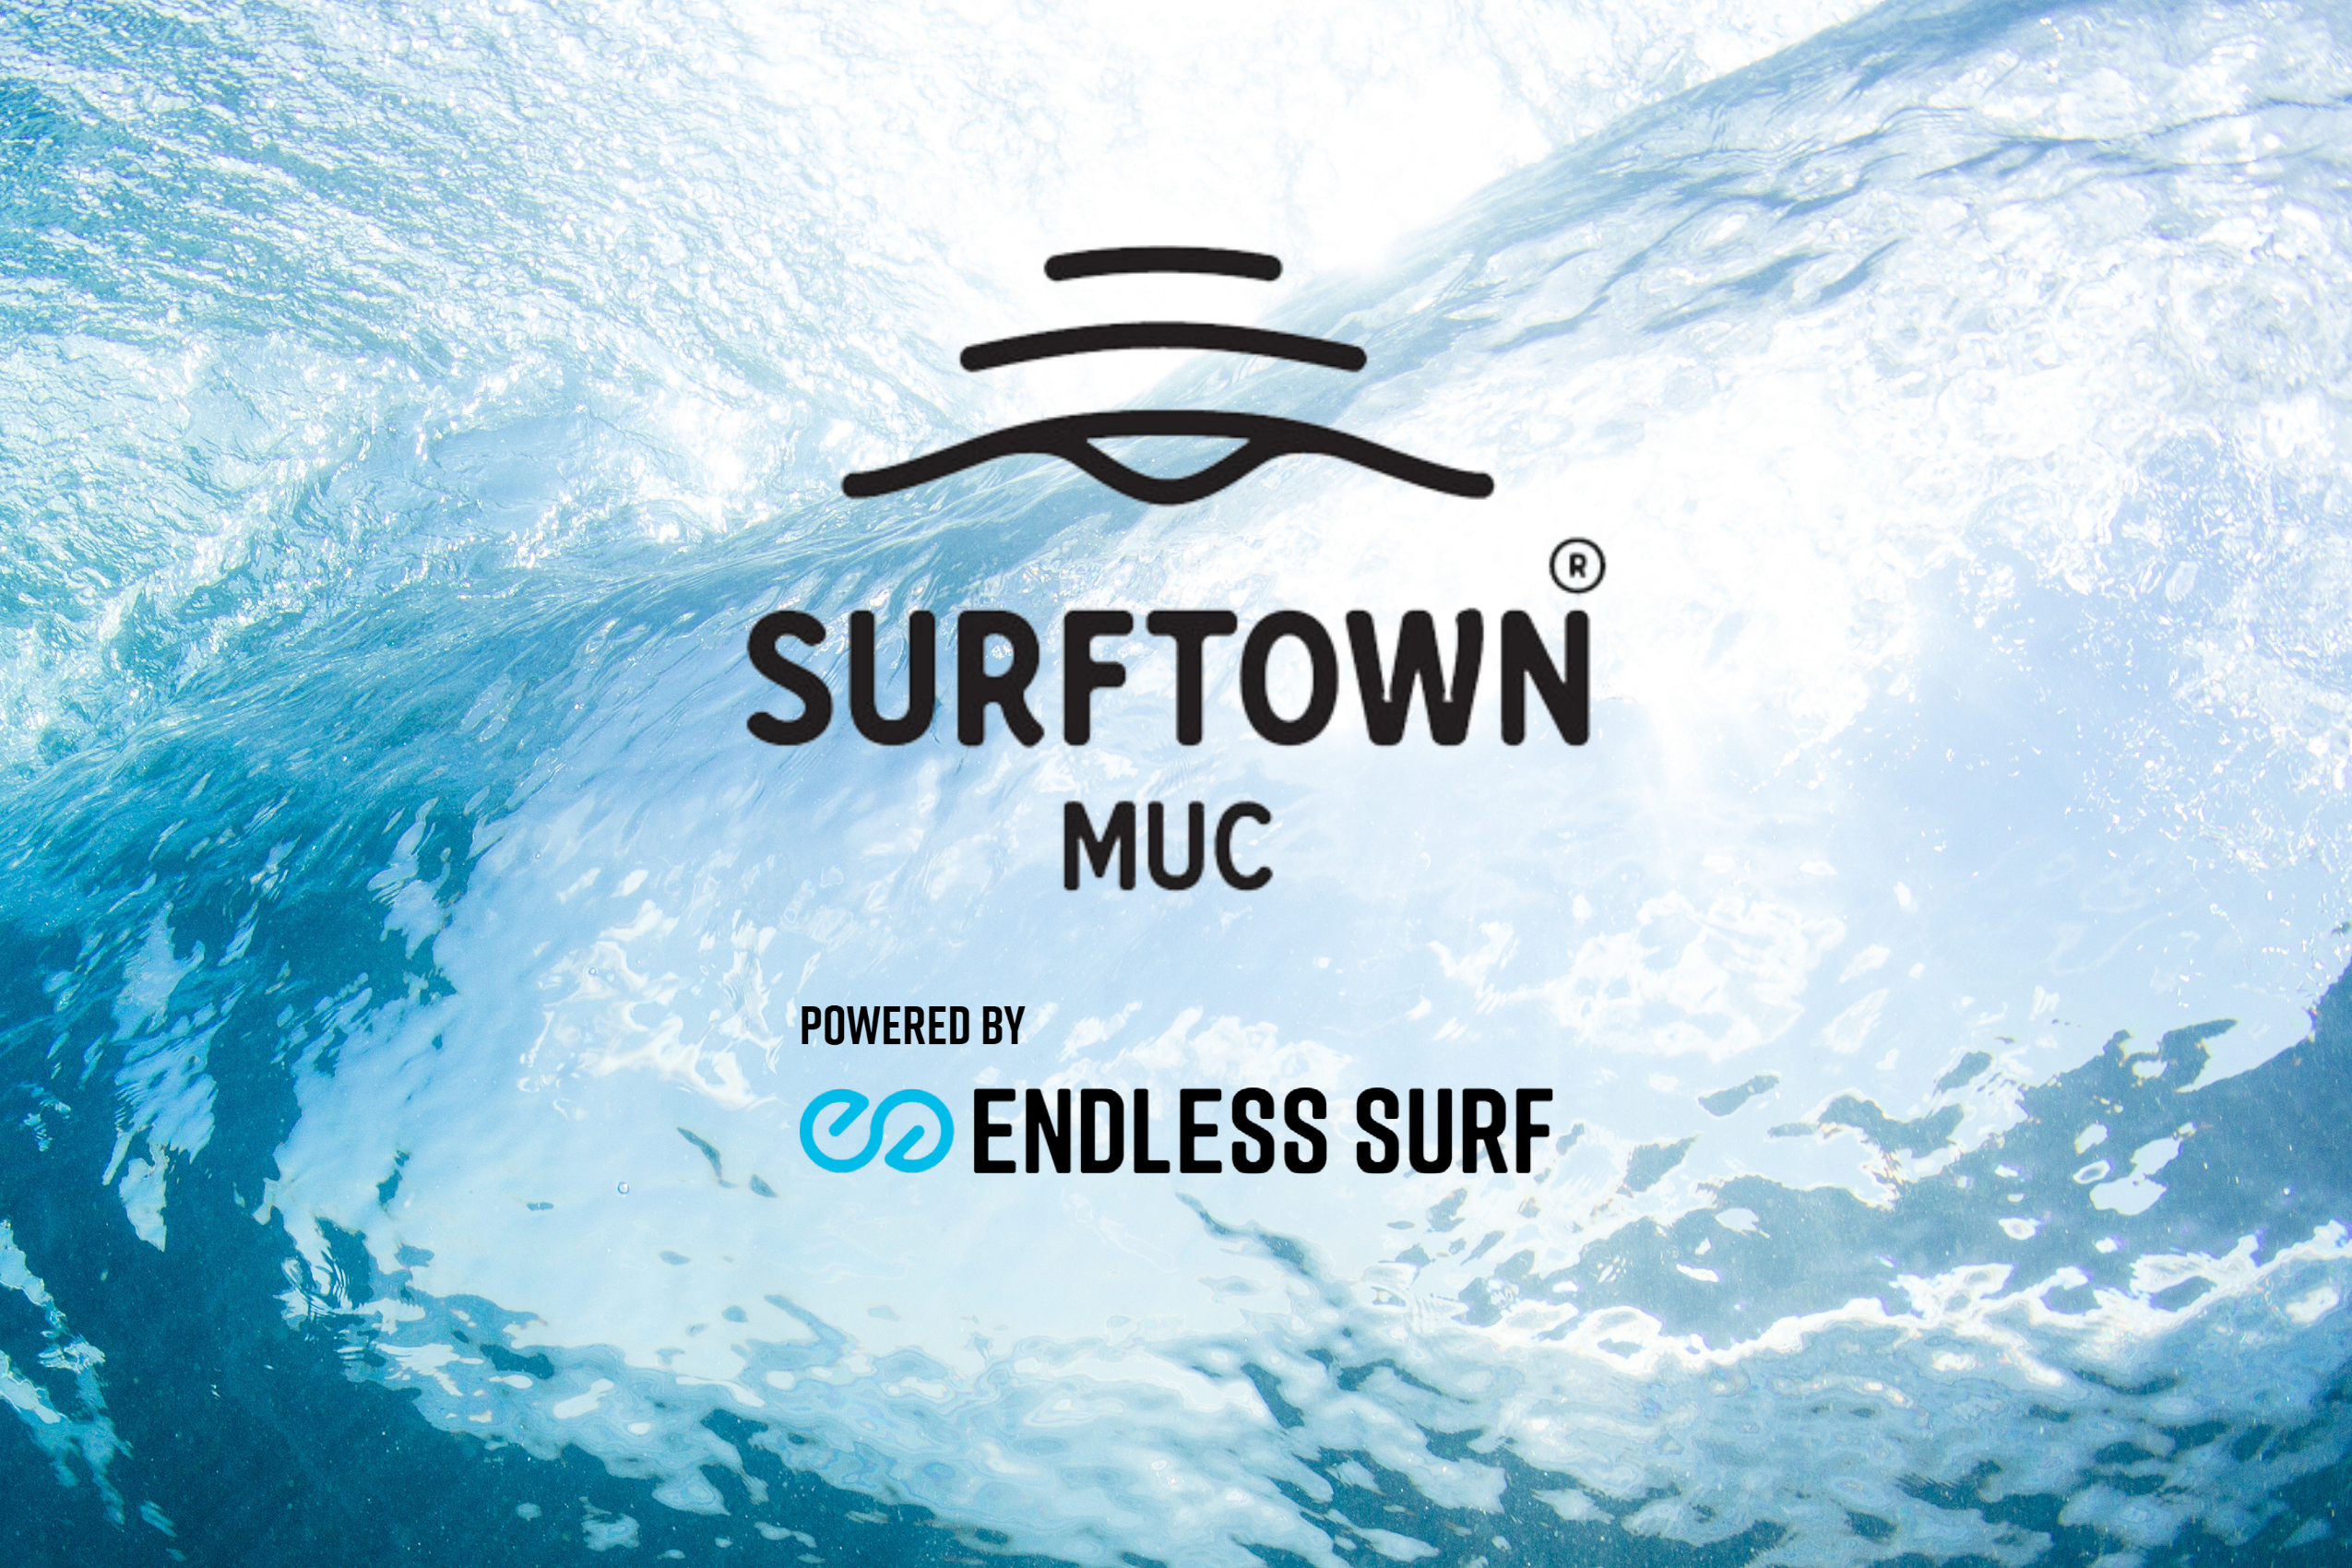 SURFTOWN® MUC is powered by Endless Surf